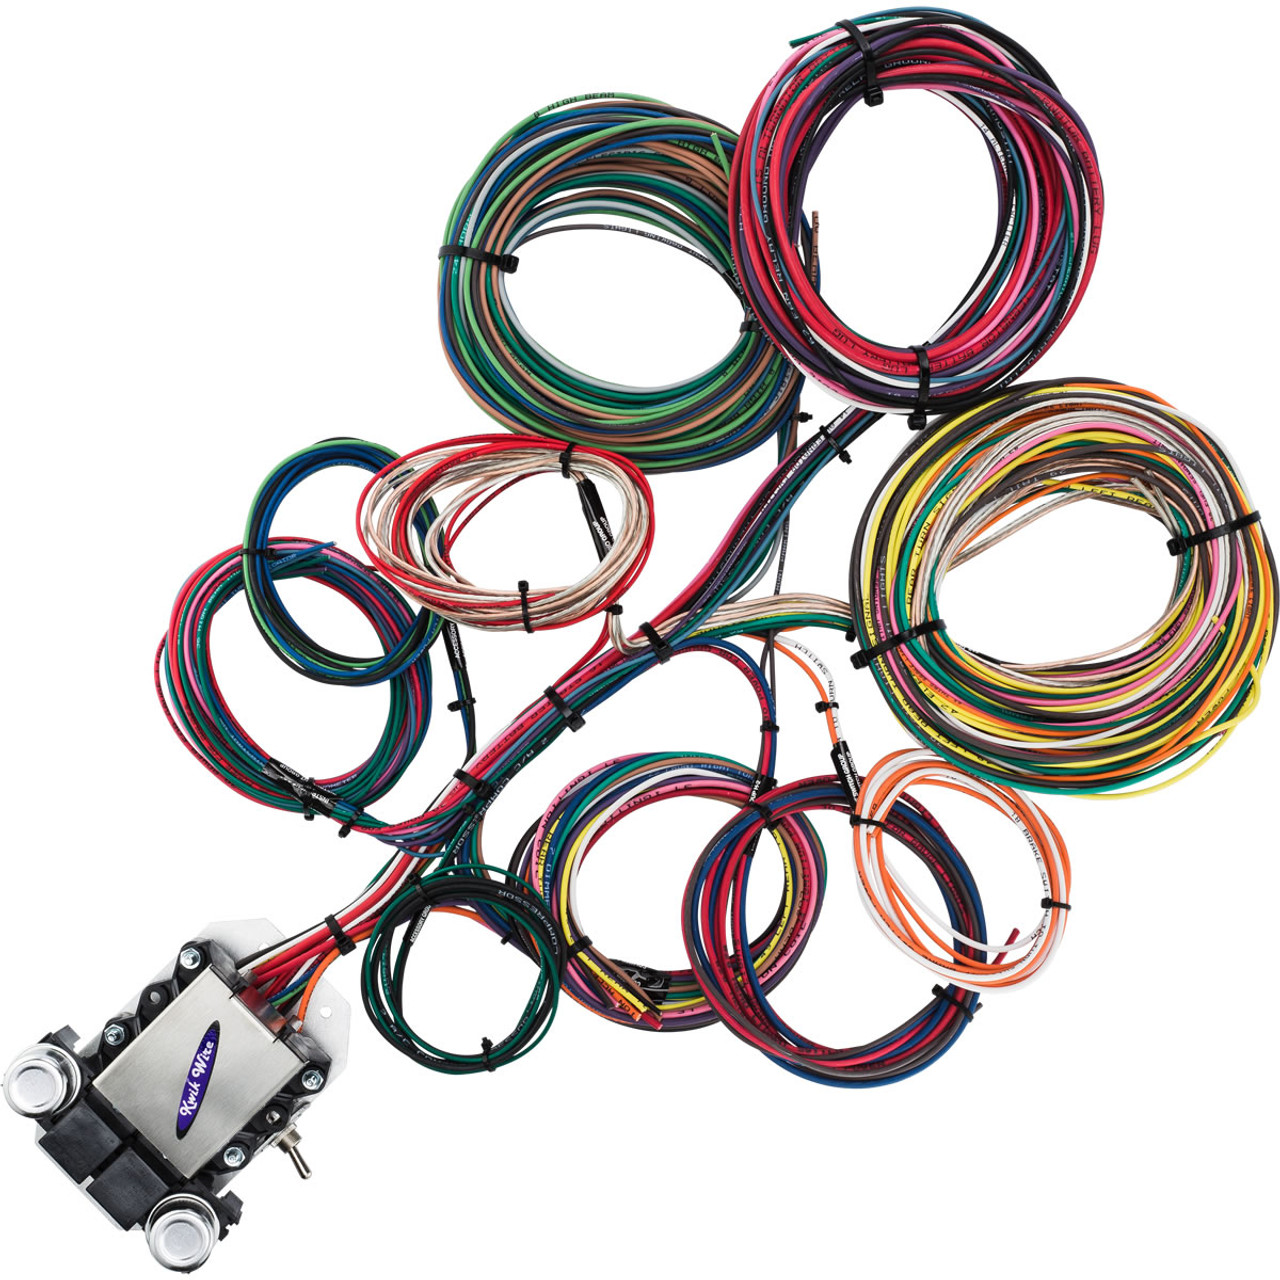 14_circuit_1_1200x1200__01557.1460433774?c=2&imbypass=on 14 circuit ford wire harness kwikwire com electrify your ride